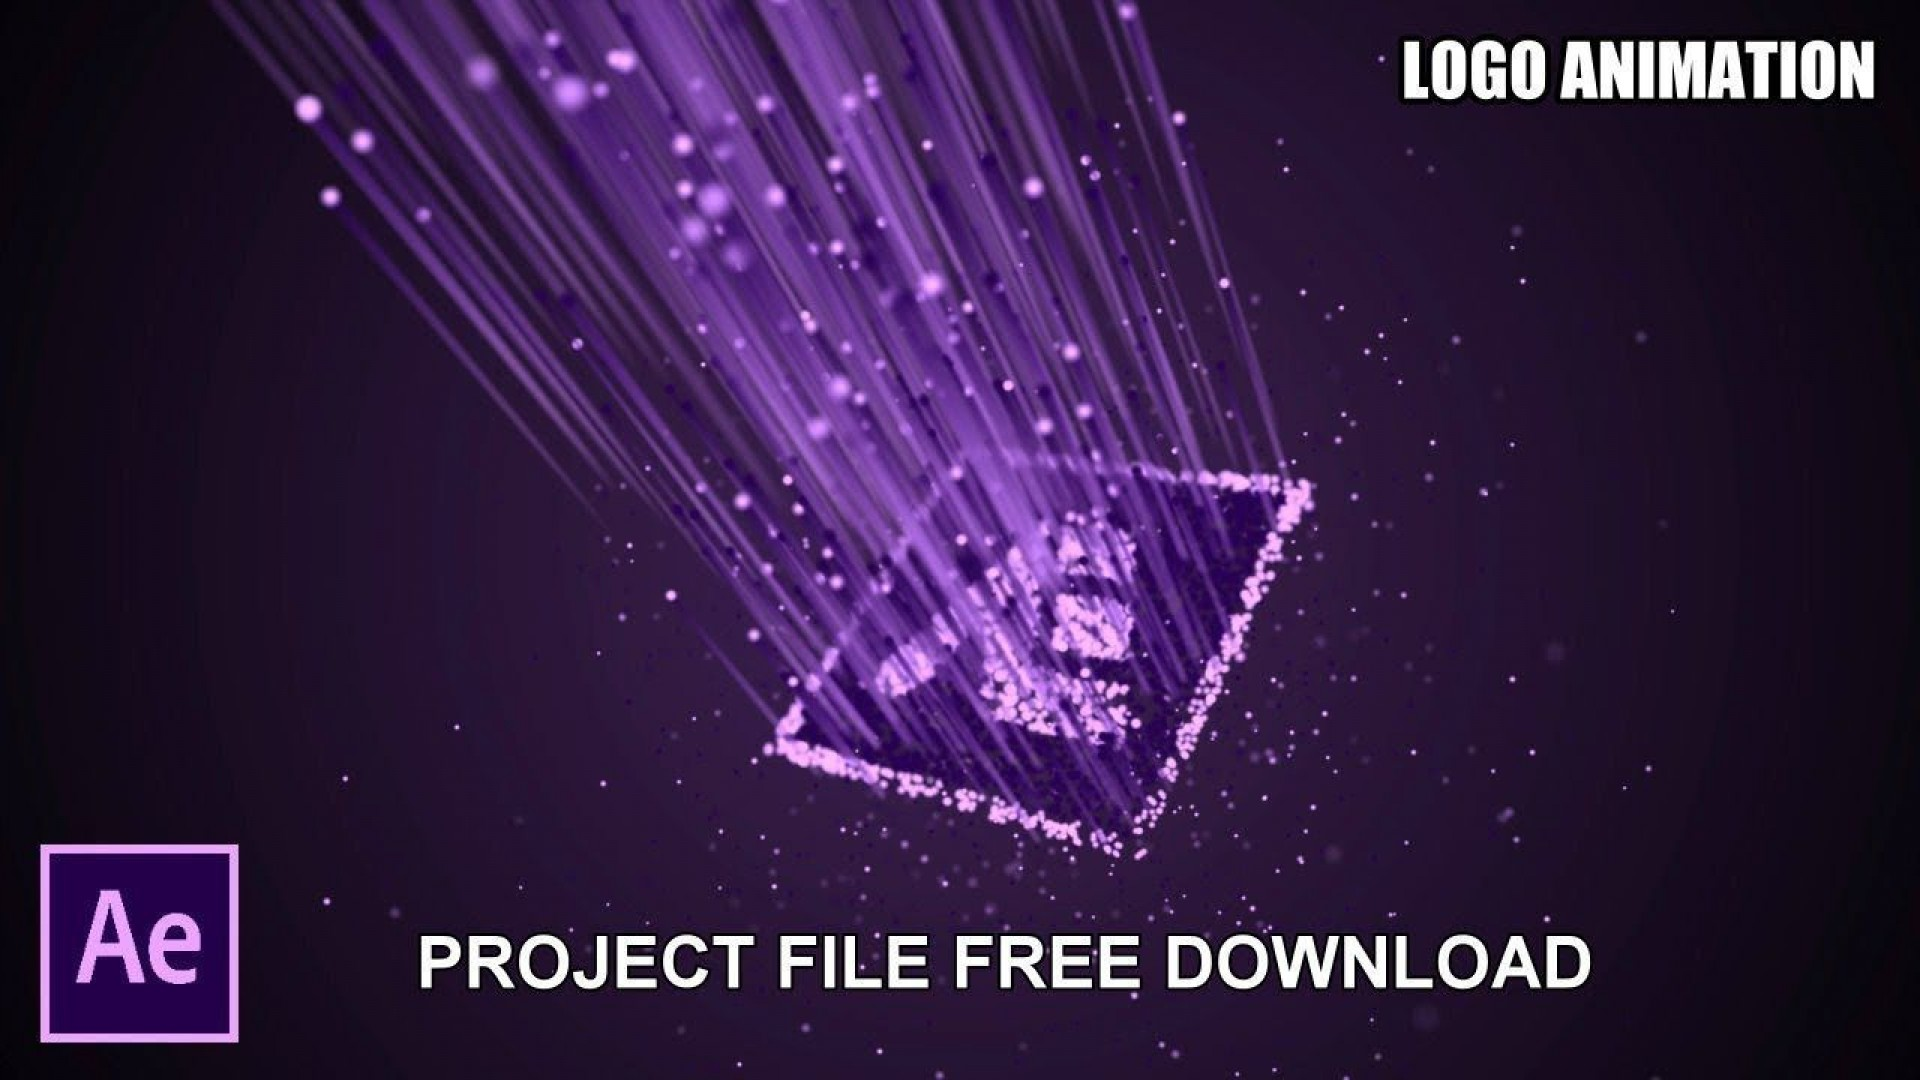 004 Unbelievable After Effect Logo Animation Template Free Download Picture  Photo Text 2d1920